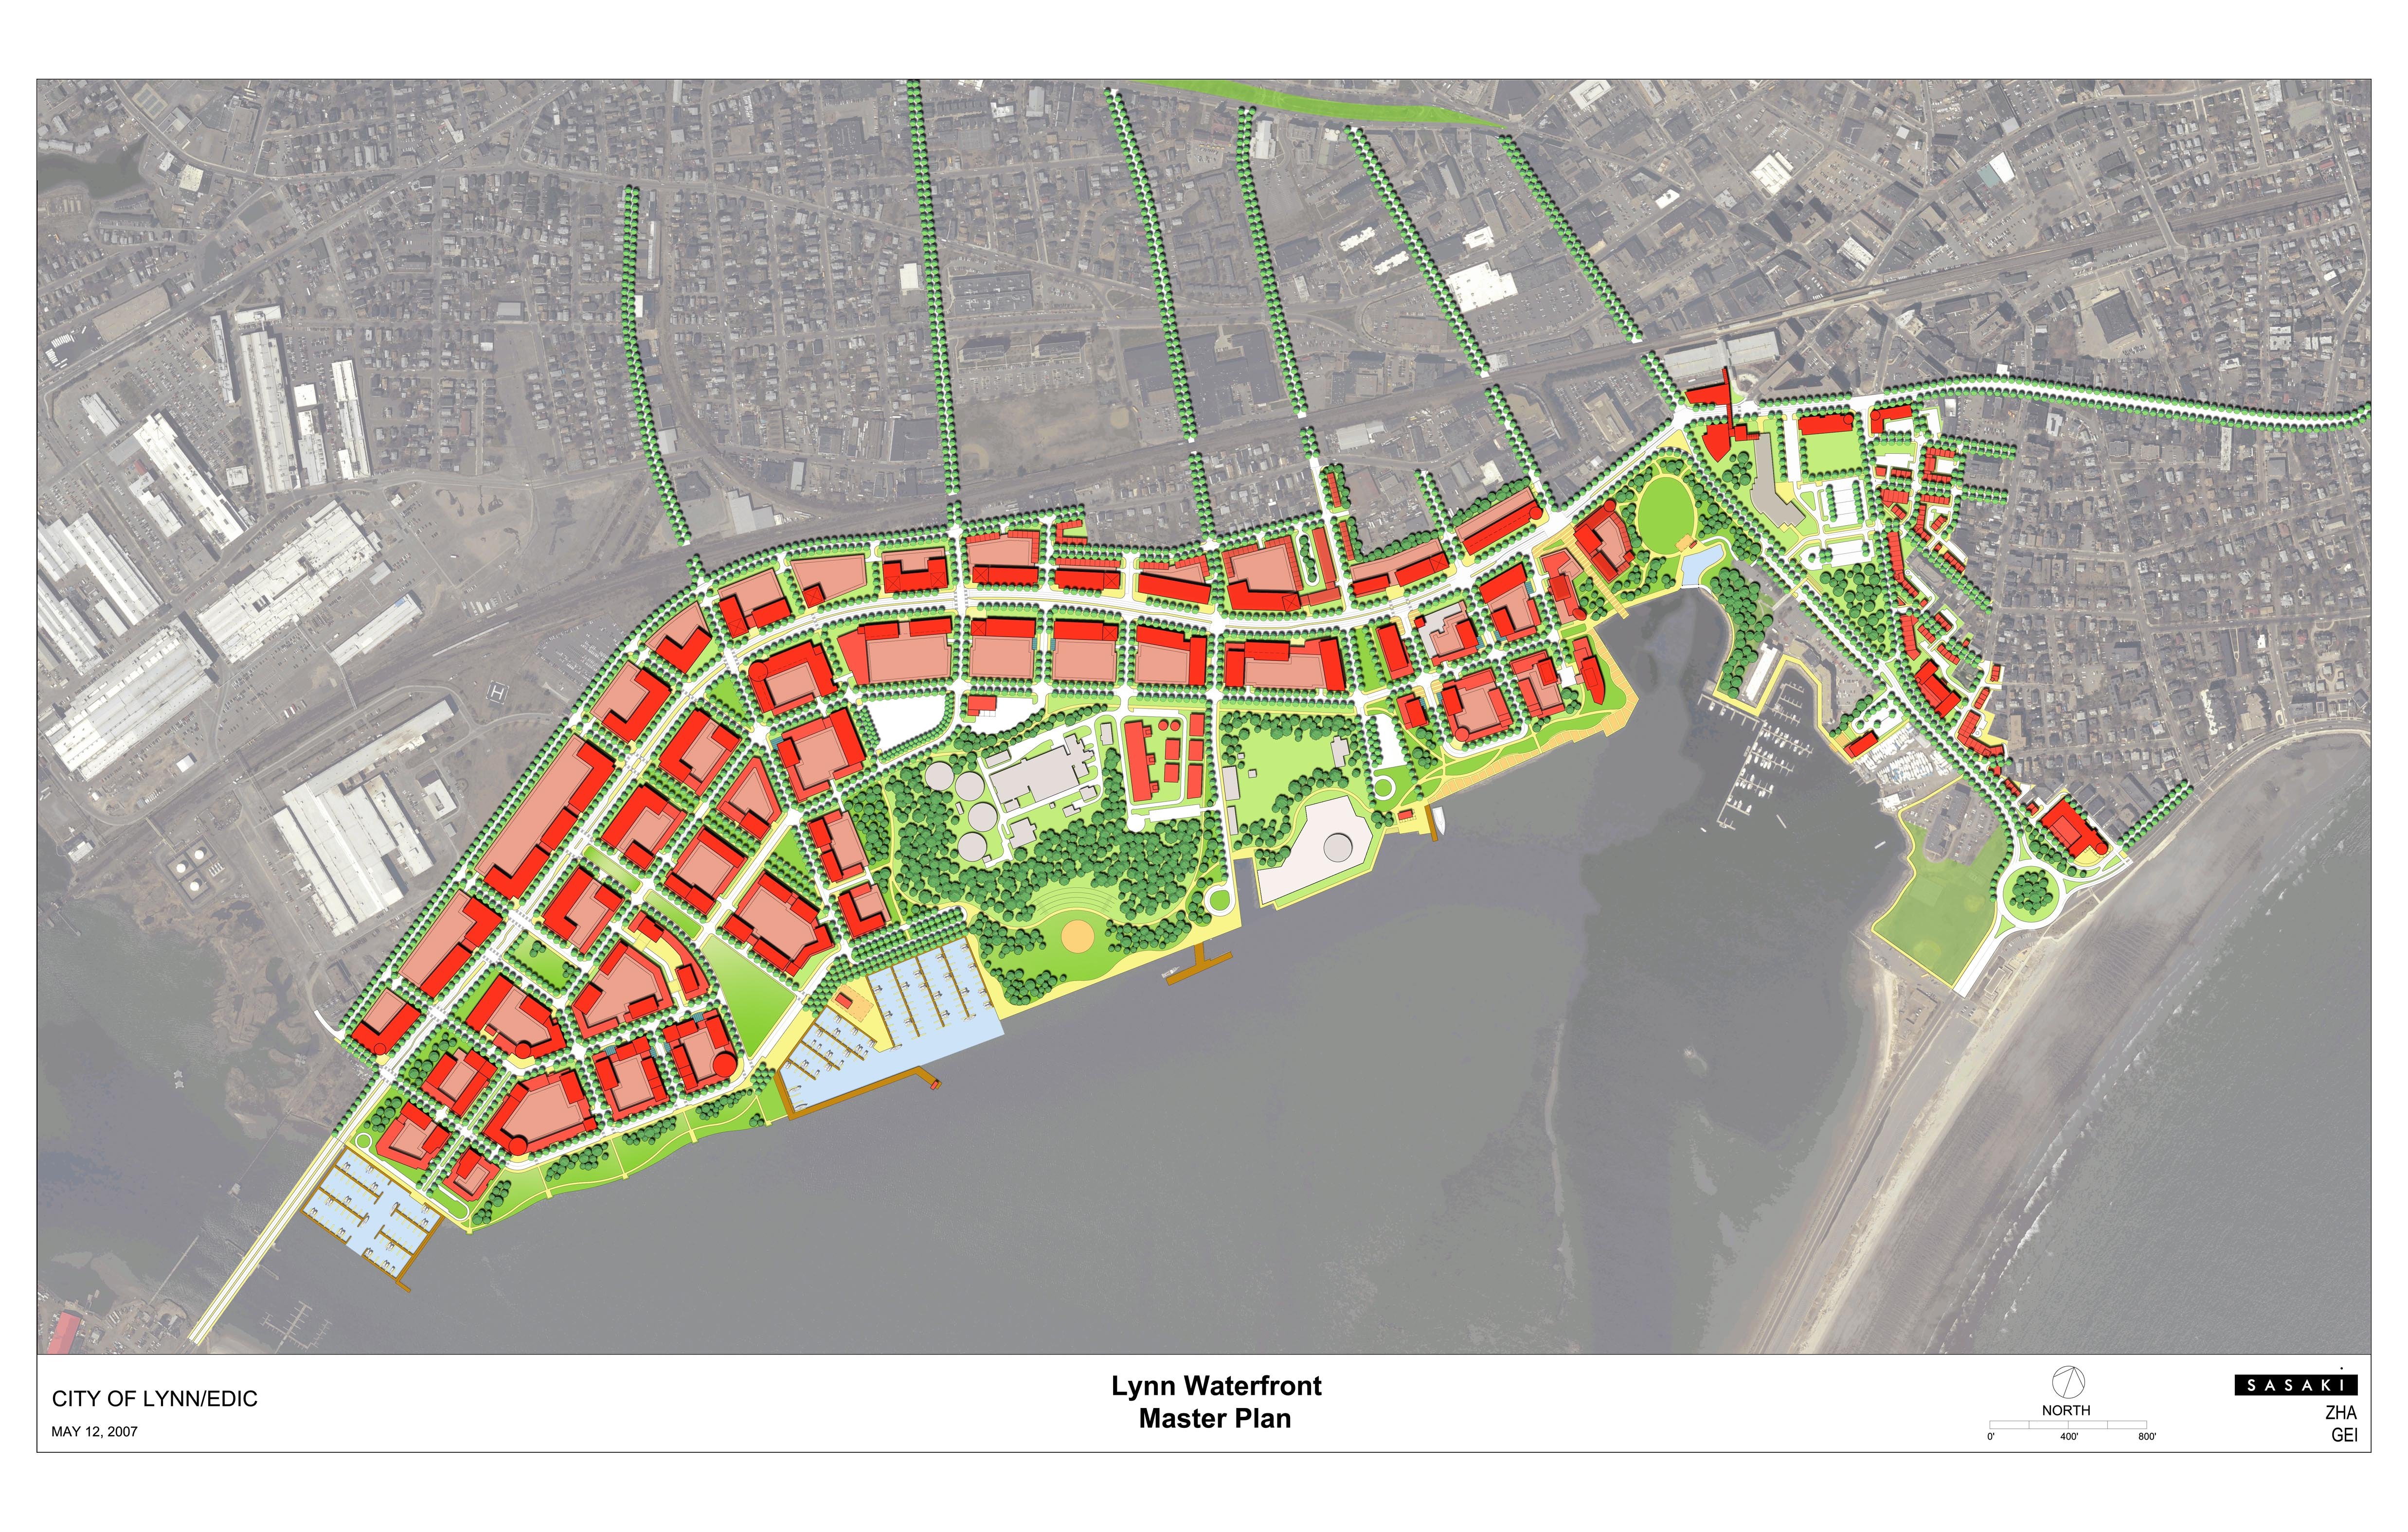 Wondrous Lynn Waterfront Master Plan Work To Date Largest Home Design Picture Inspirations Pitcheantrous